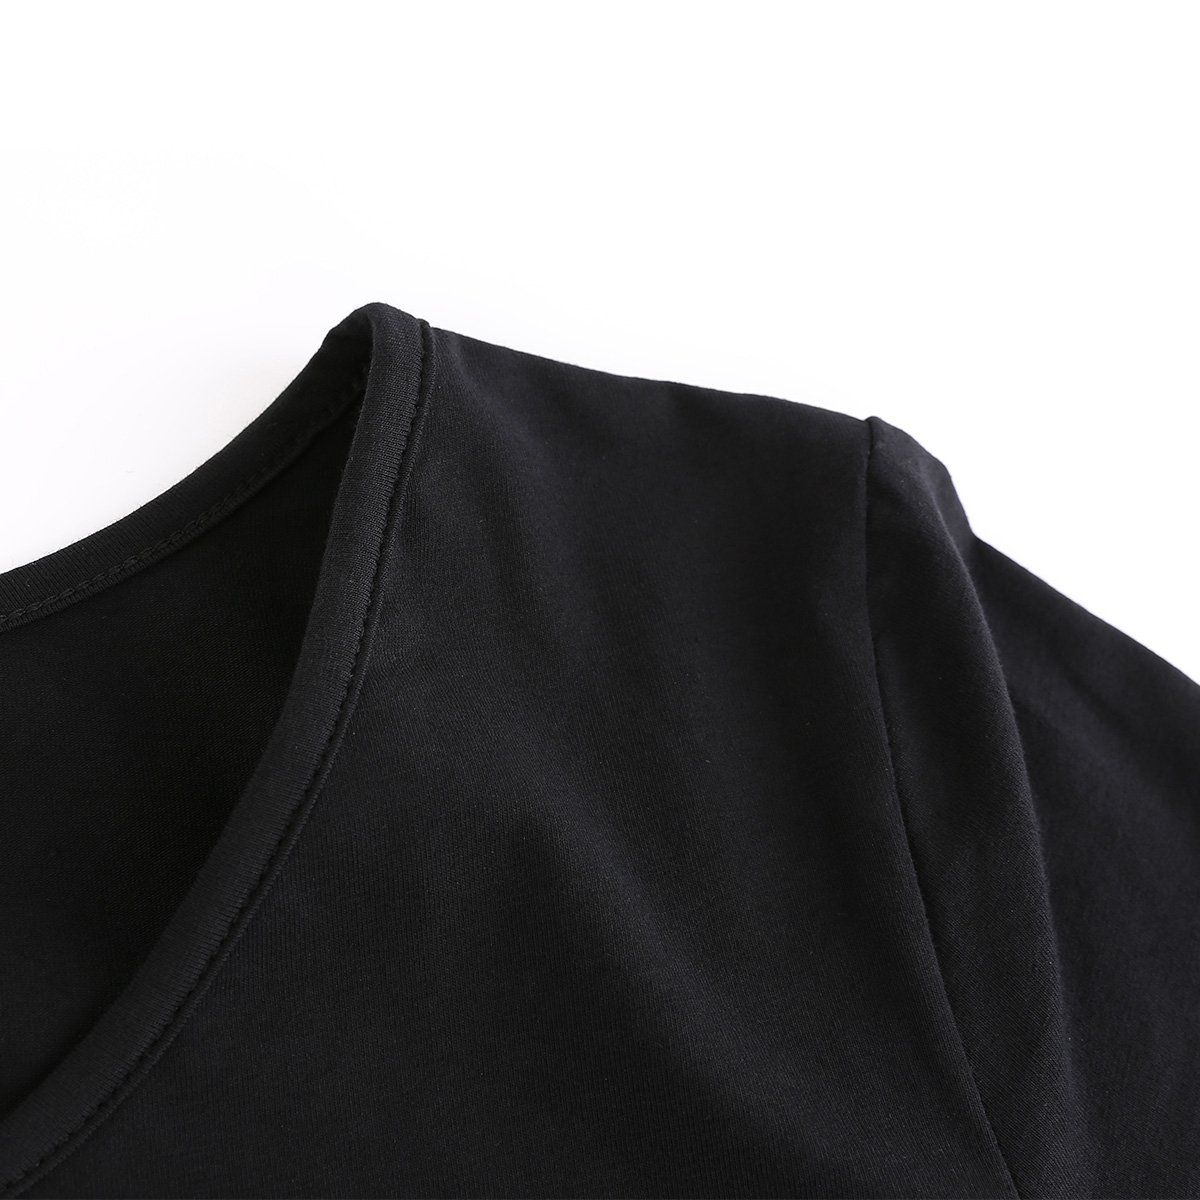 Maternity Shirt Maternity Tank Tops Maternity Top Womens Pregnancy Shirts Clothes Black L by Peauty (Image #4)